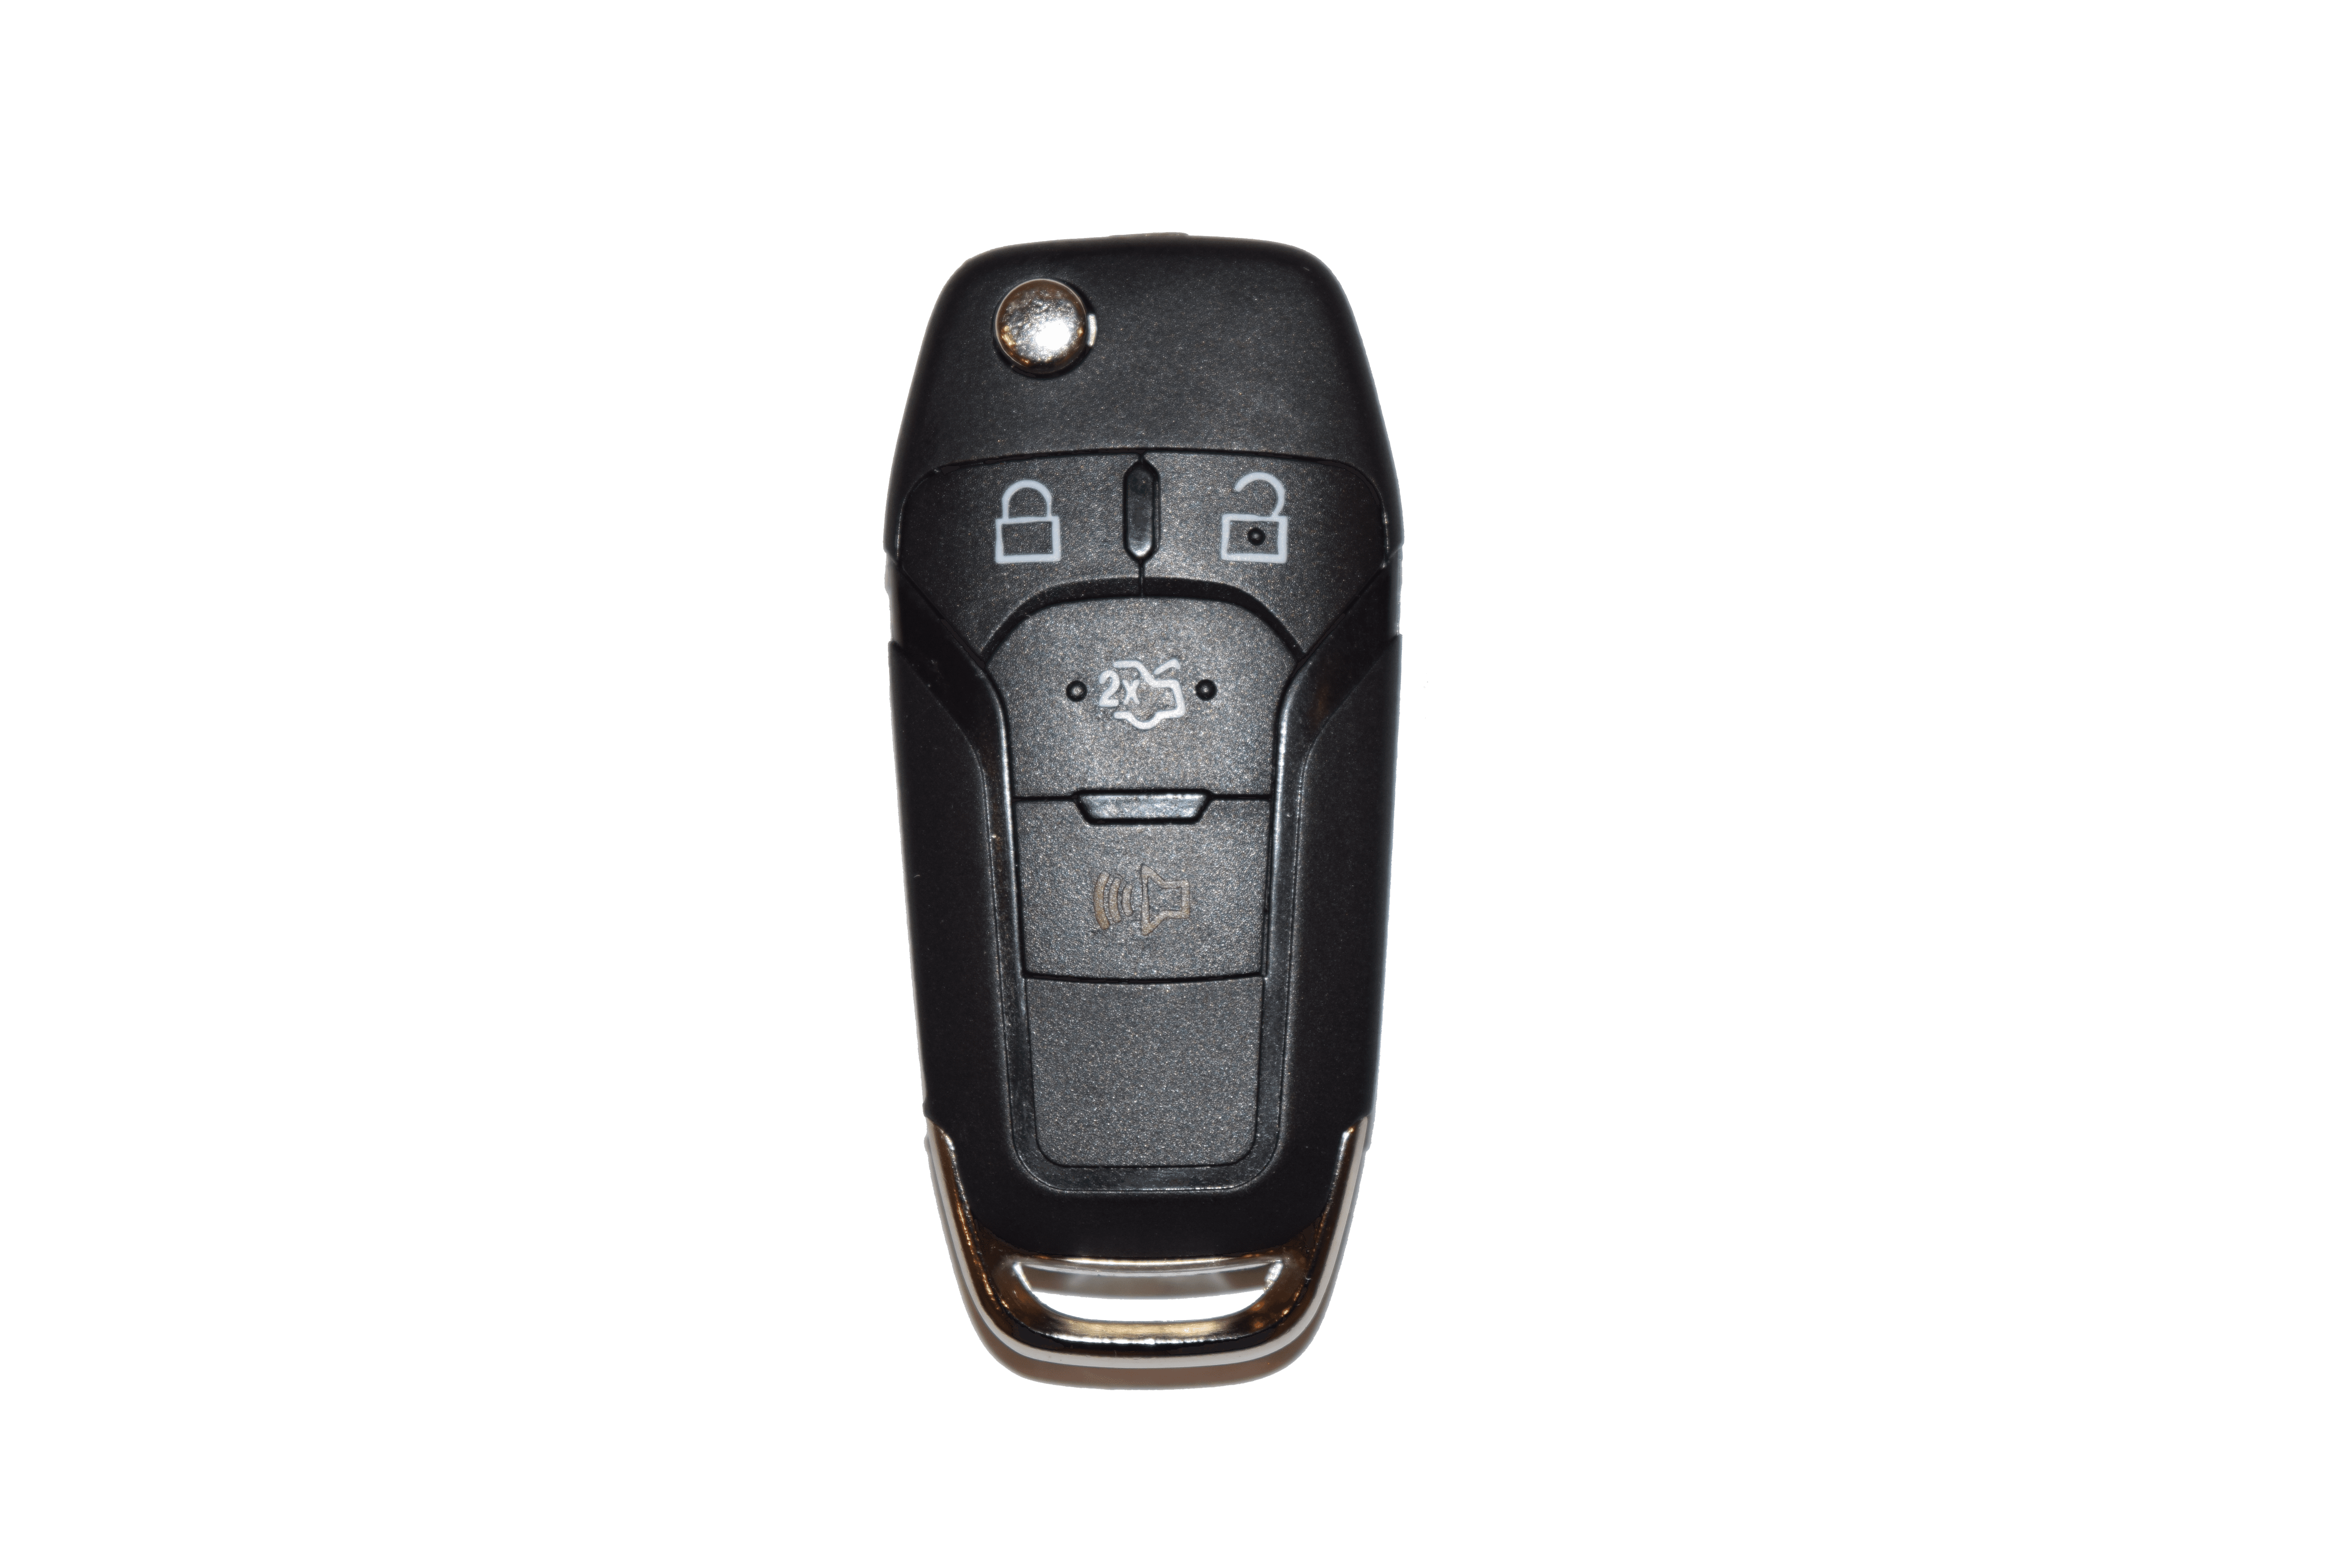 APEX Locksmith, Apex Denver Locksmith, Denver Locksmith, Lincoln Car Key Replacement, Lost Lincoln Car Keys